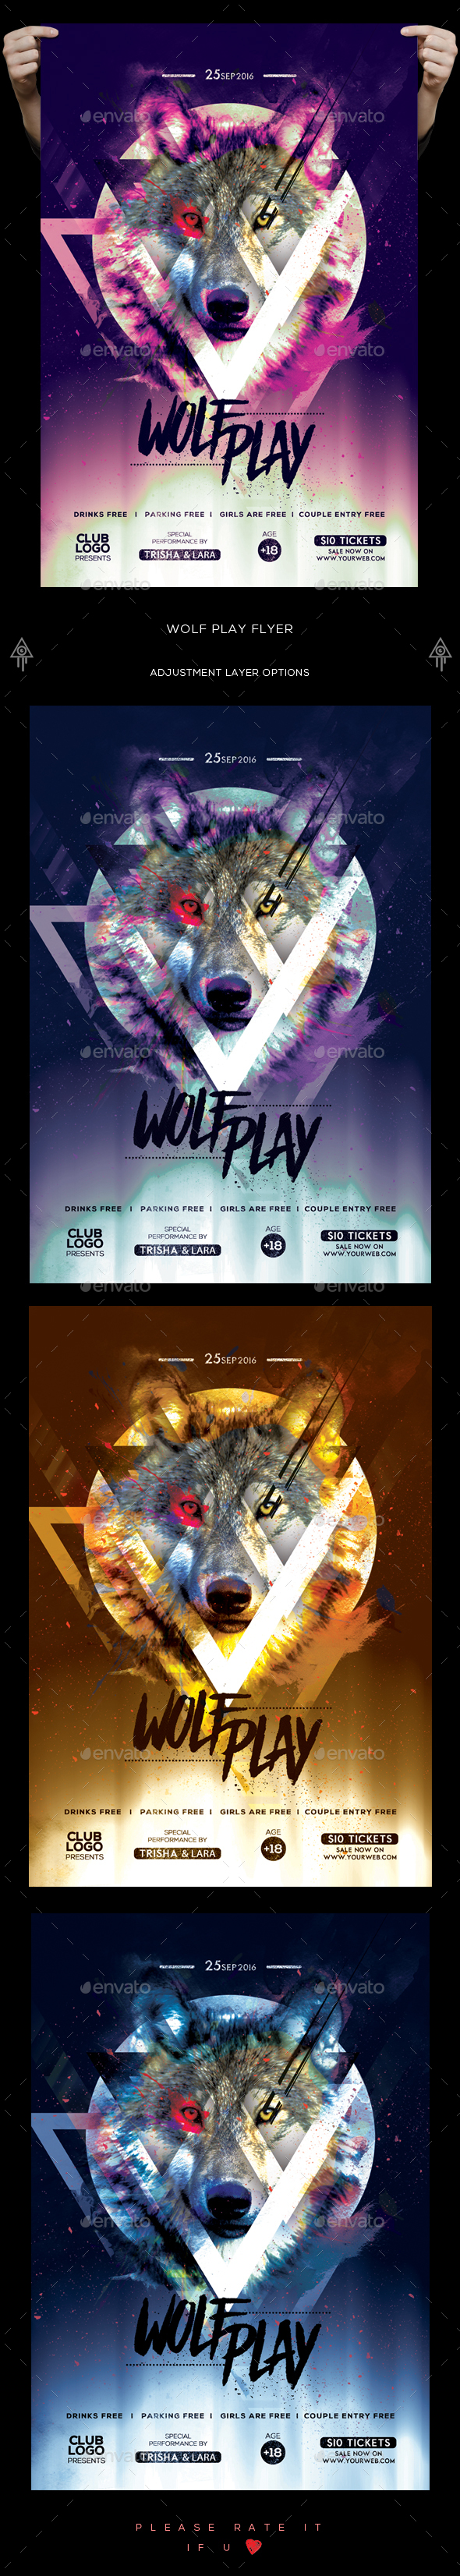 Wolf Play Party Flyer - Clubs & Parties Events